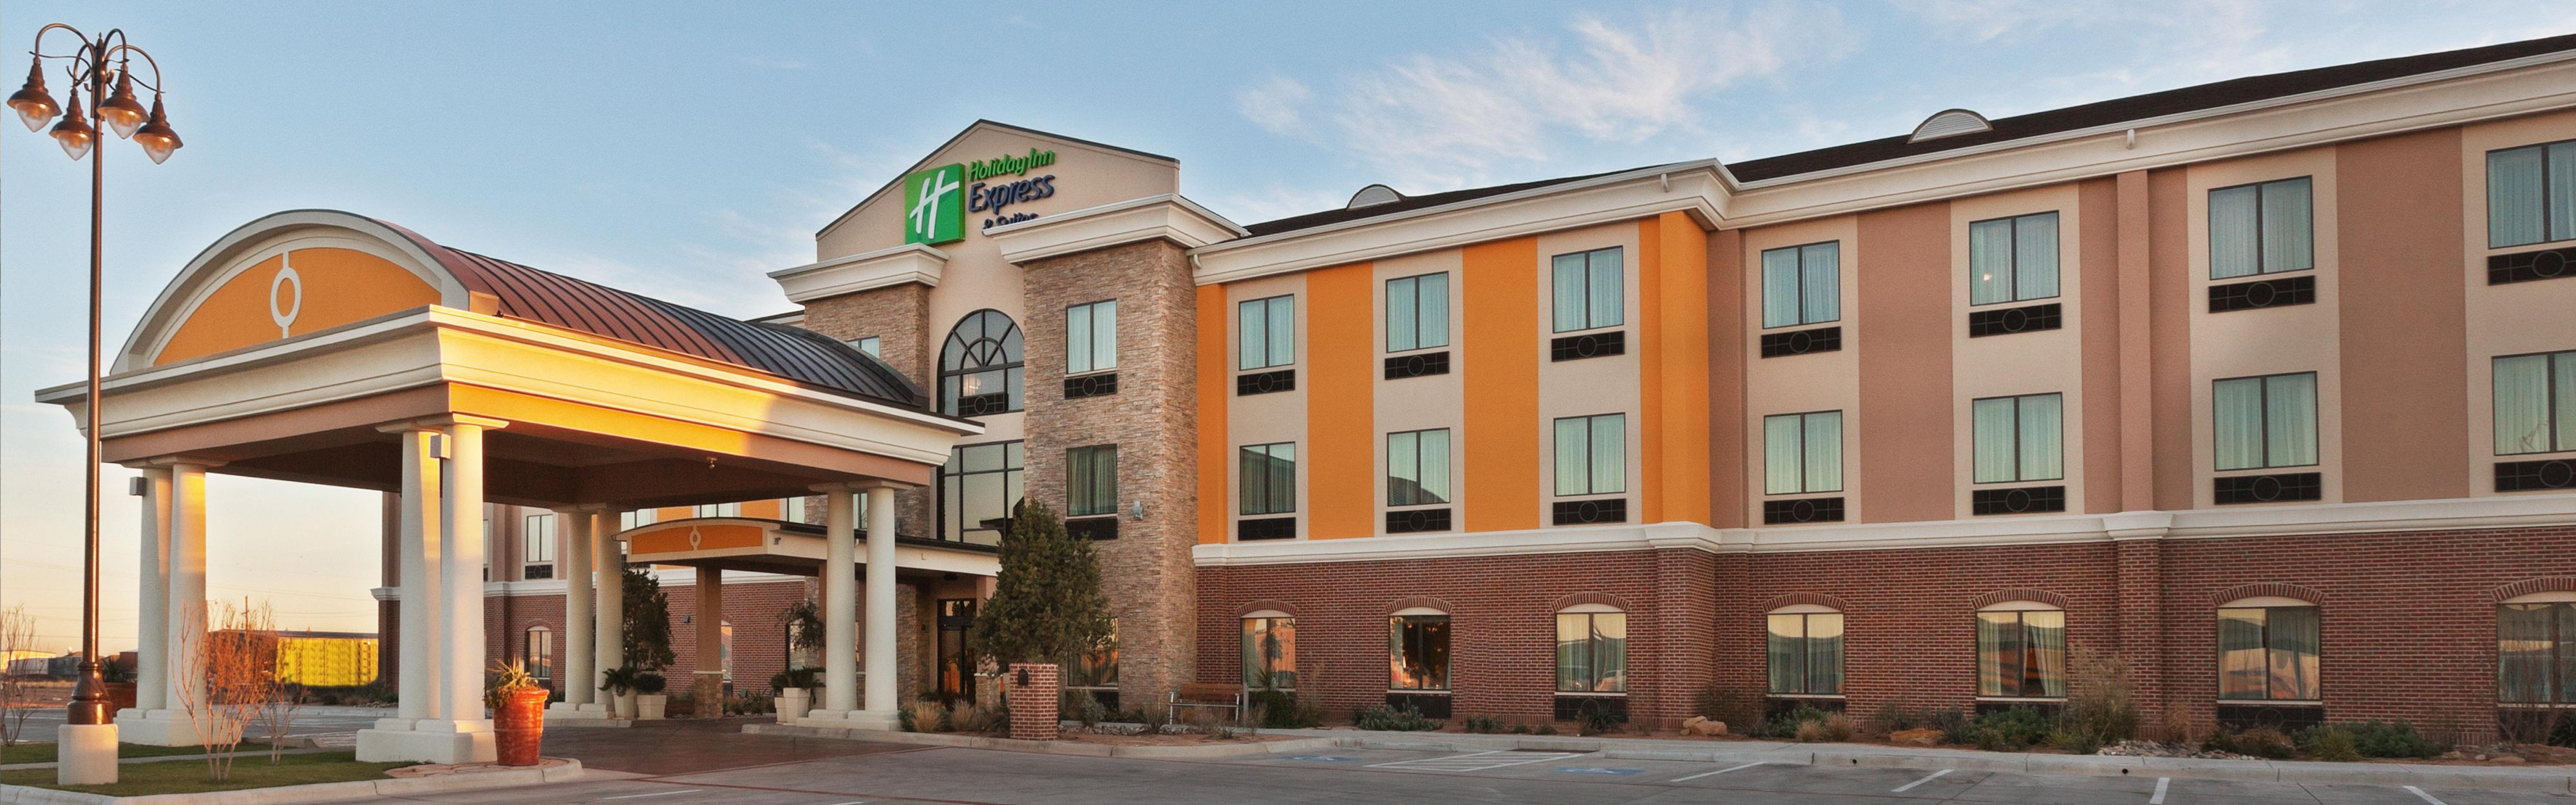 Holiday Inn Express Suites Lubbock Southwest Wolfforth Wolfforth Texas Tx